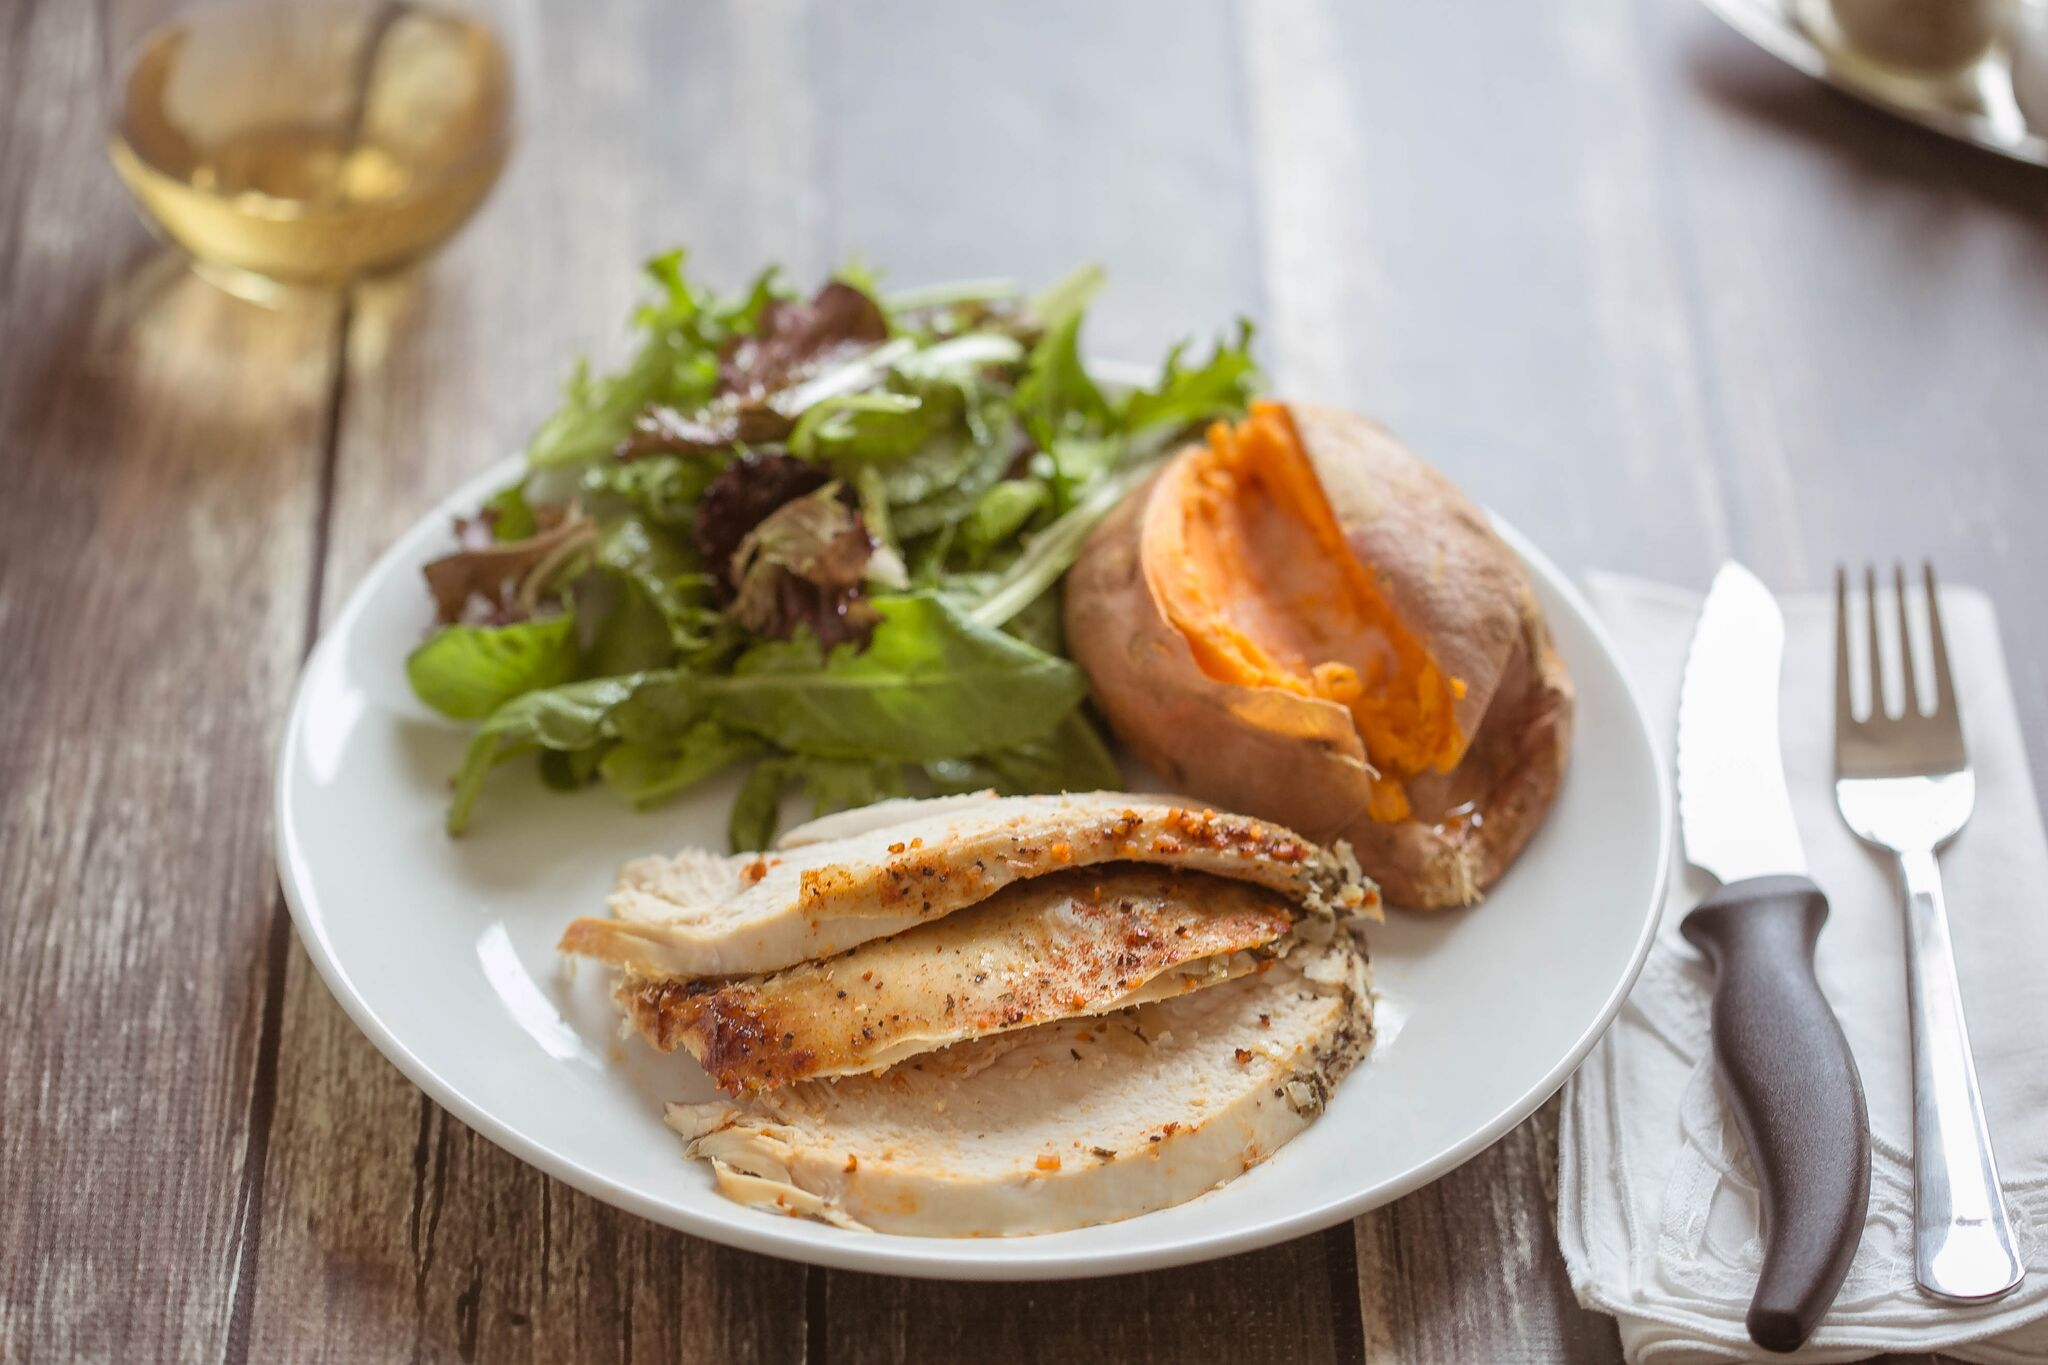 Serve finished chicken with a salad, sweet potato, and a glass of wine then enjoy.